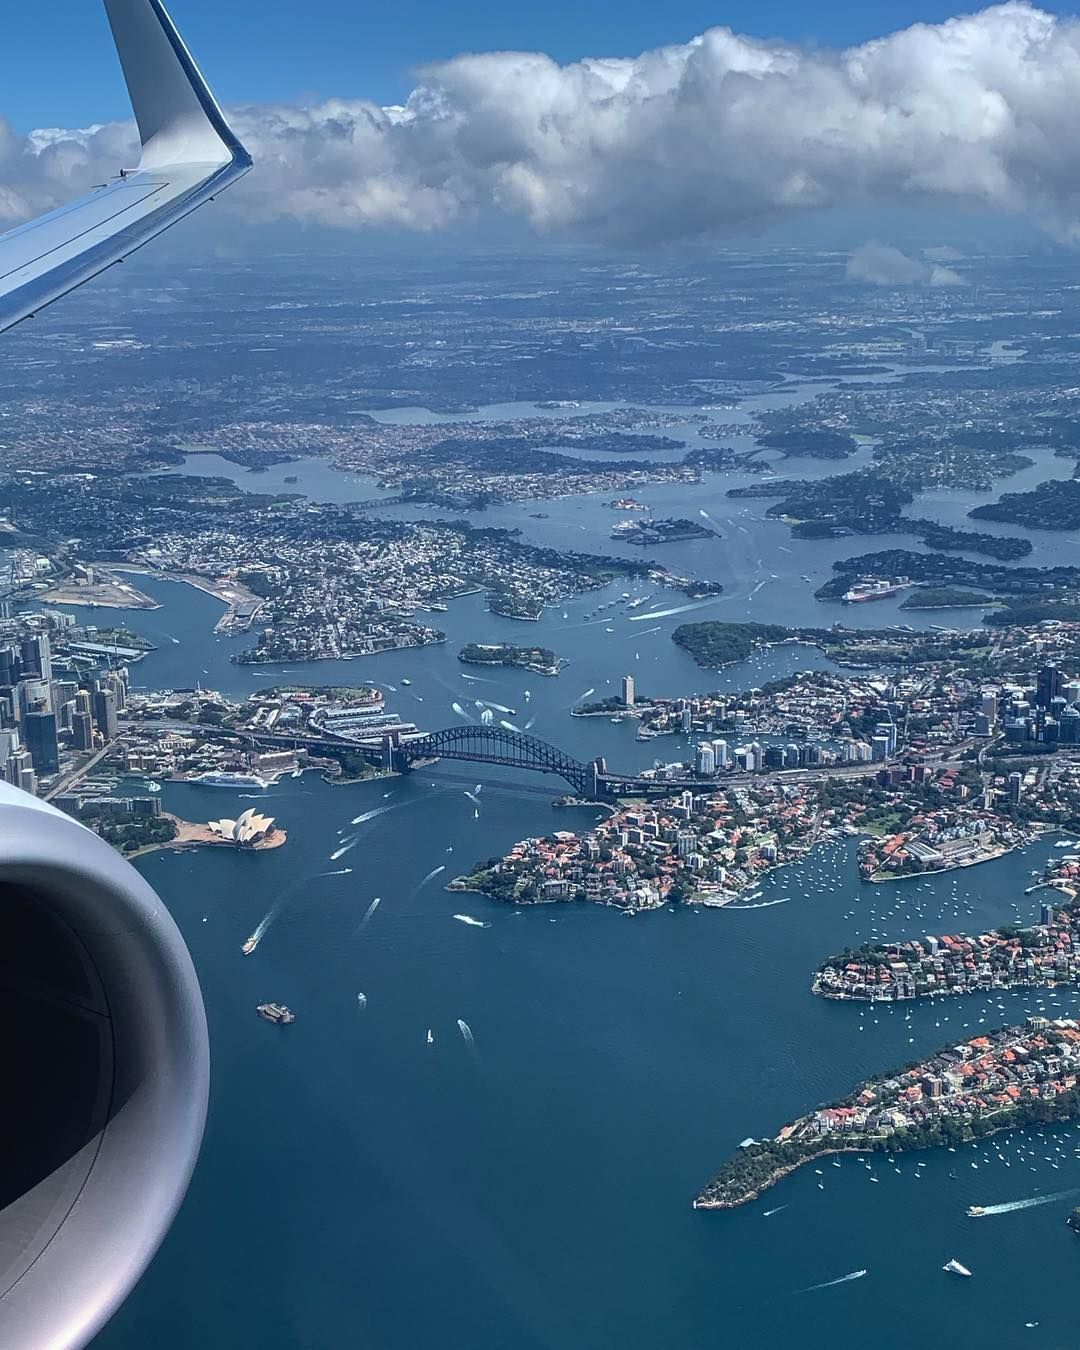 Peter On Instagram The Beauty Of A Windowseat When Departing From Sydney Incredible City Views T Beautiful Places To Travel City View Travel Photography